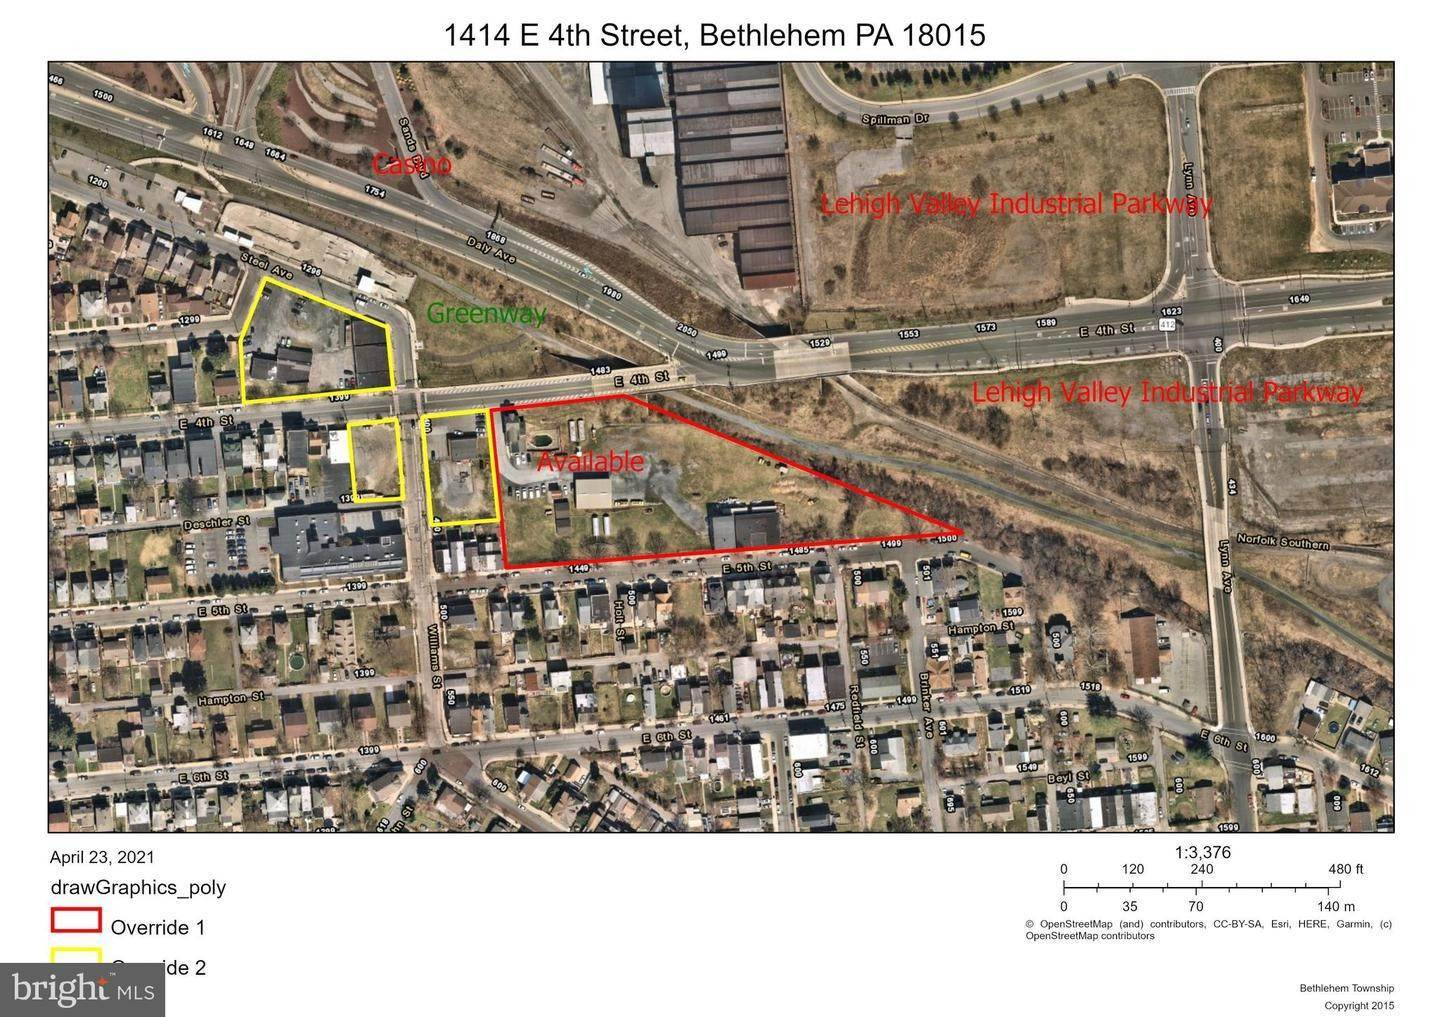 Land / Commercial for Sale at 1473-1485 E 5TH Street Bethlehem, Pennsylvania 18015 United States